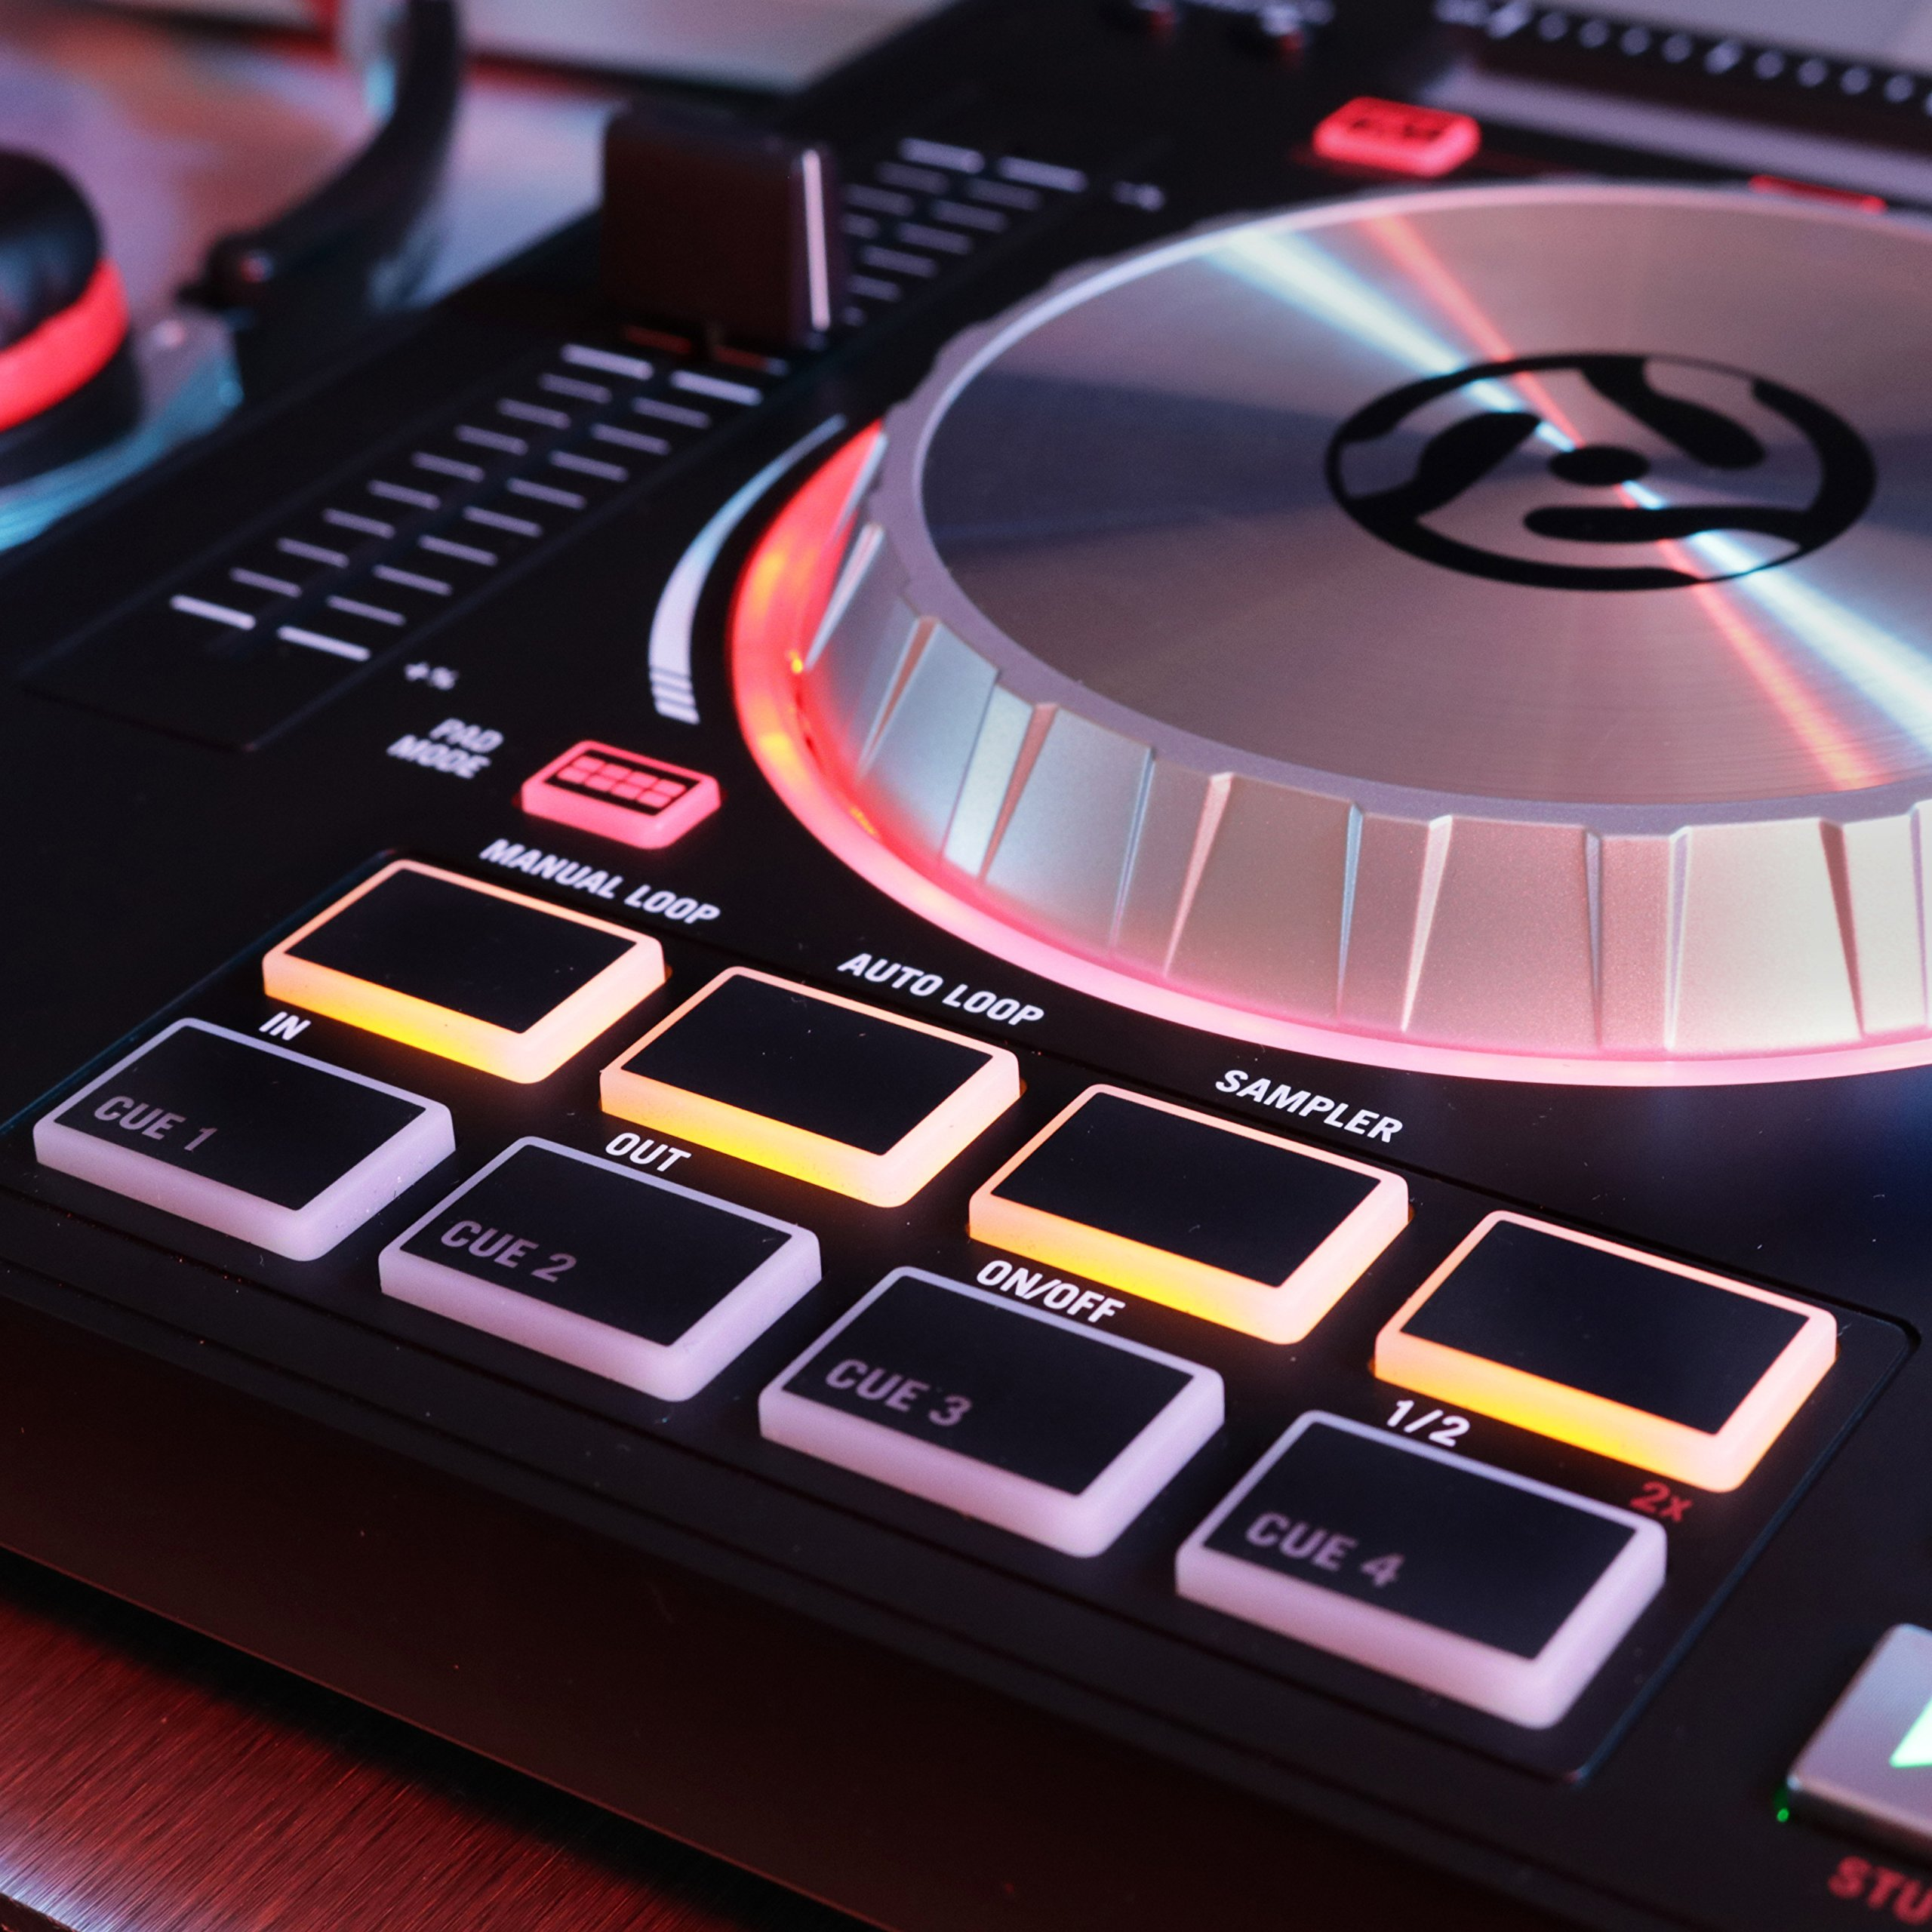 Numark Mixtrack Pro 3 | USB DJ Controller with Trigger Pads & Serato DJ Intro Download (Includes Built-In Sound Card) by Numark (Image #6)